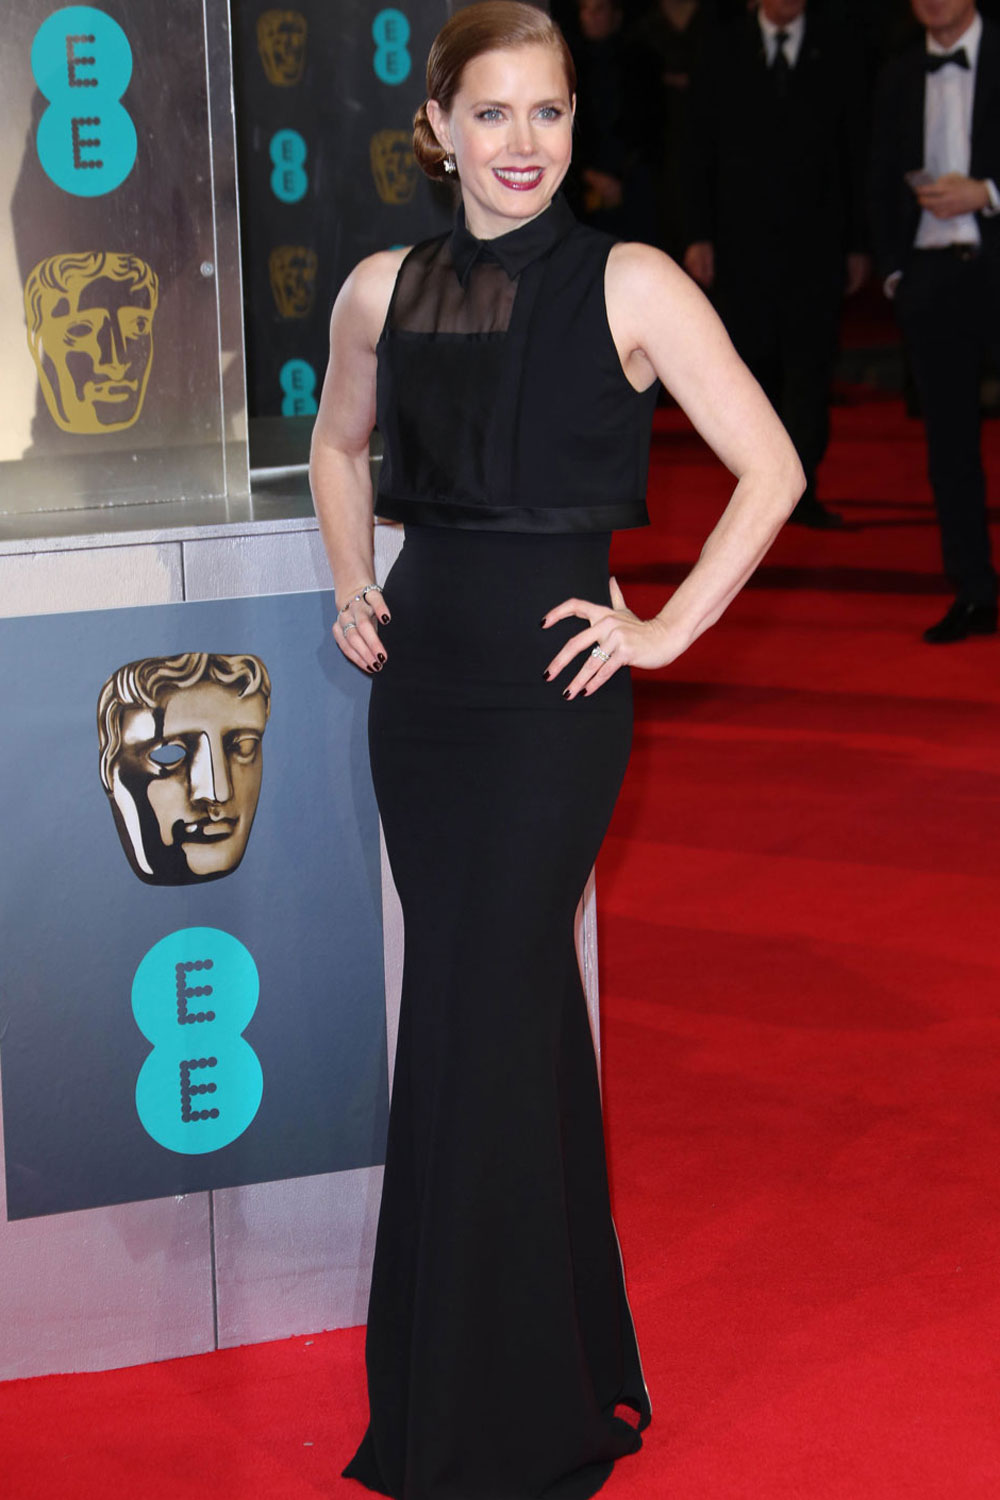 The 8 BAFTAs Looks We Can't Stop Talking About